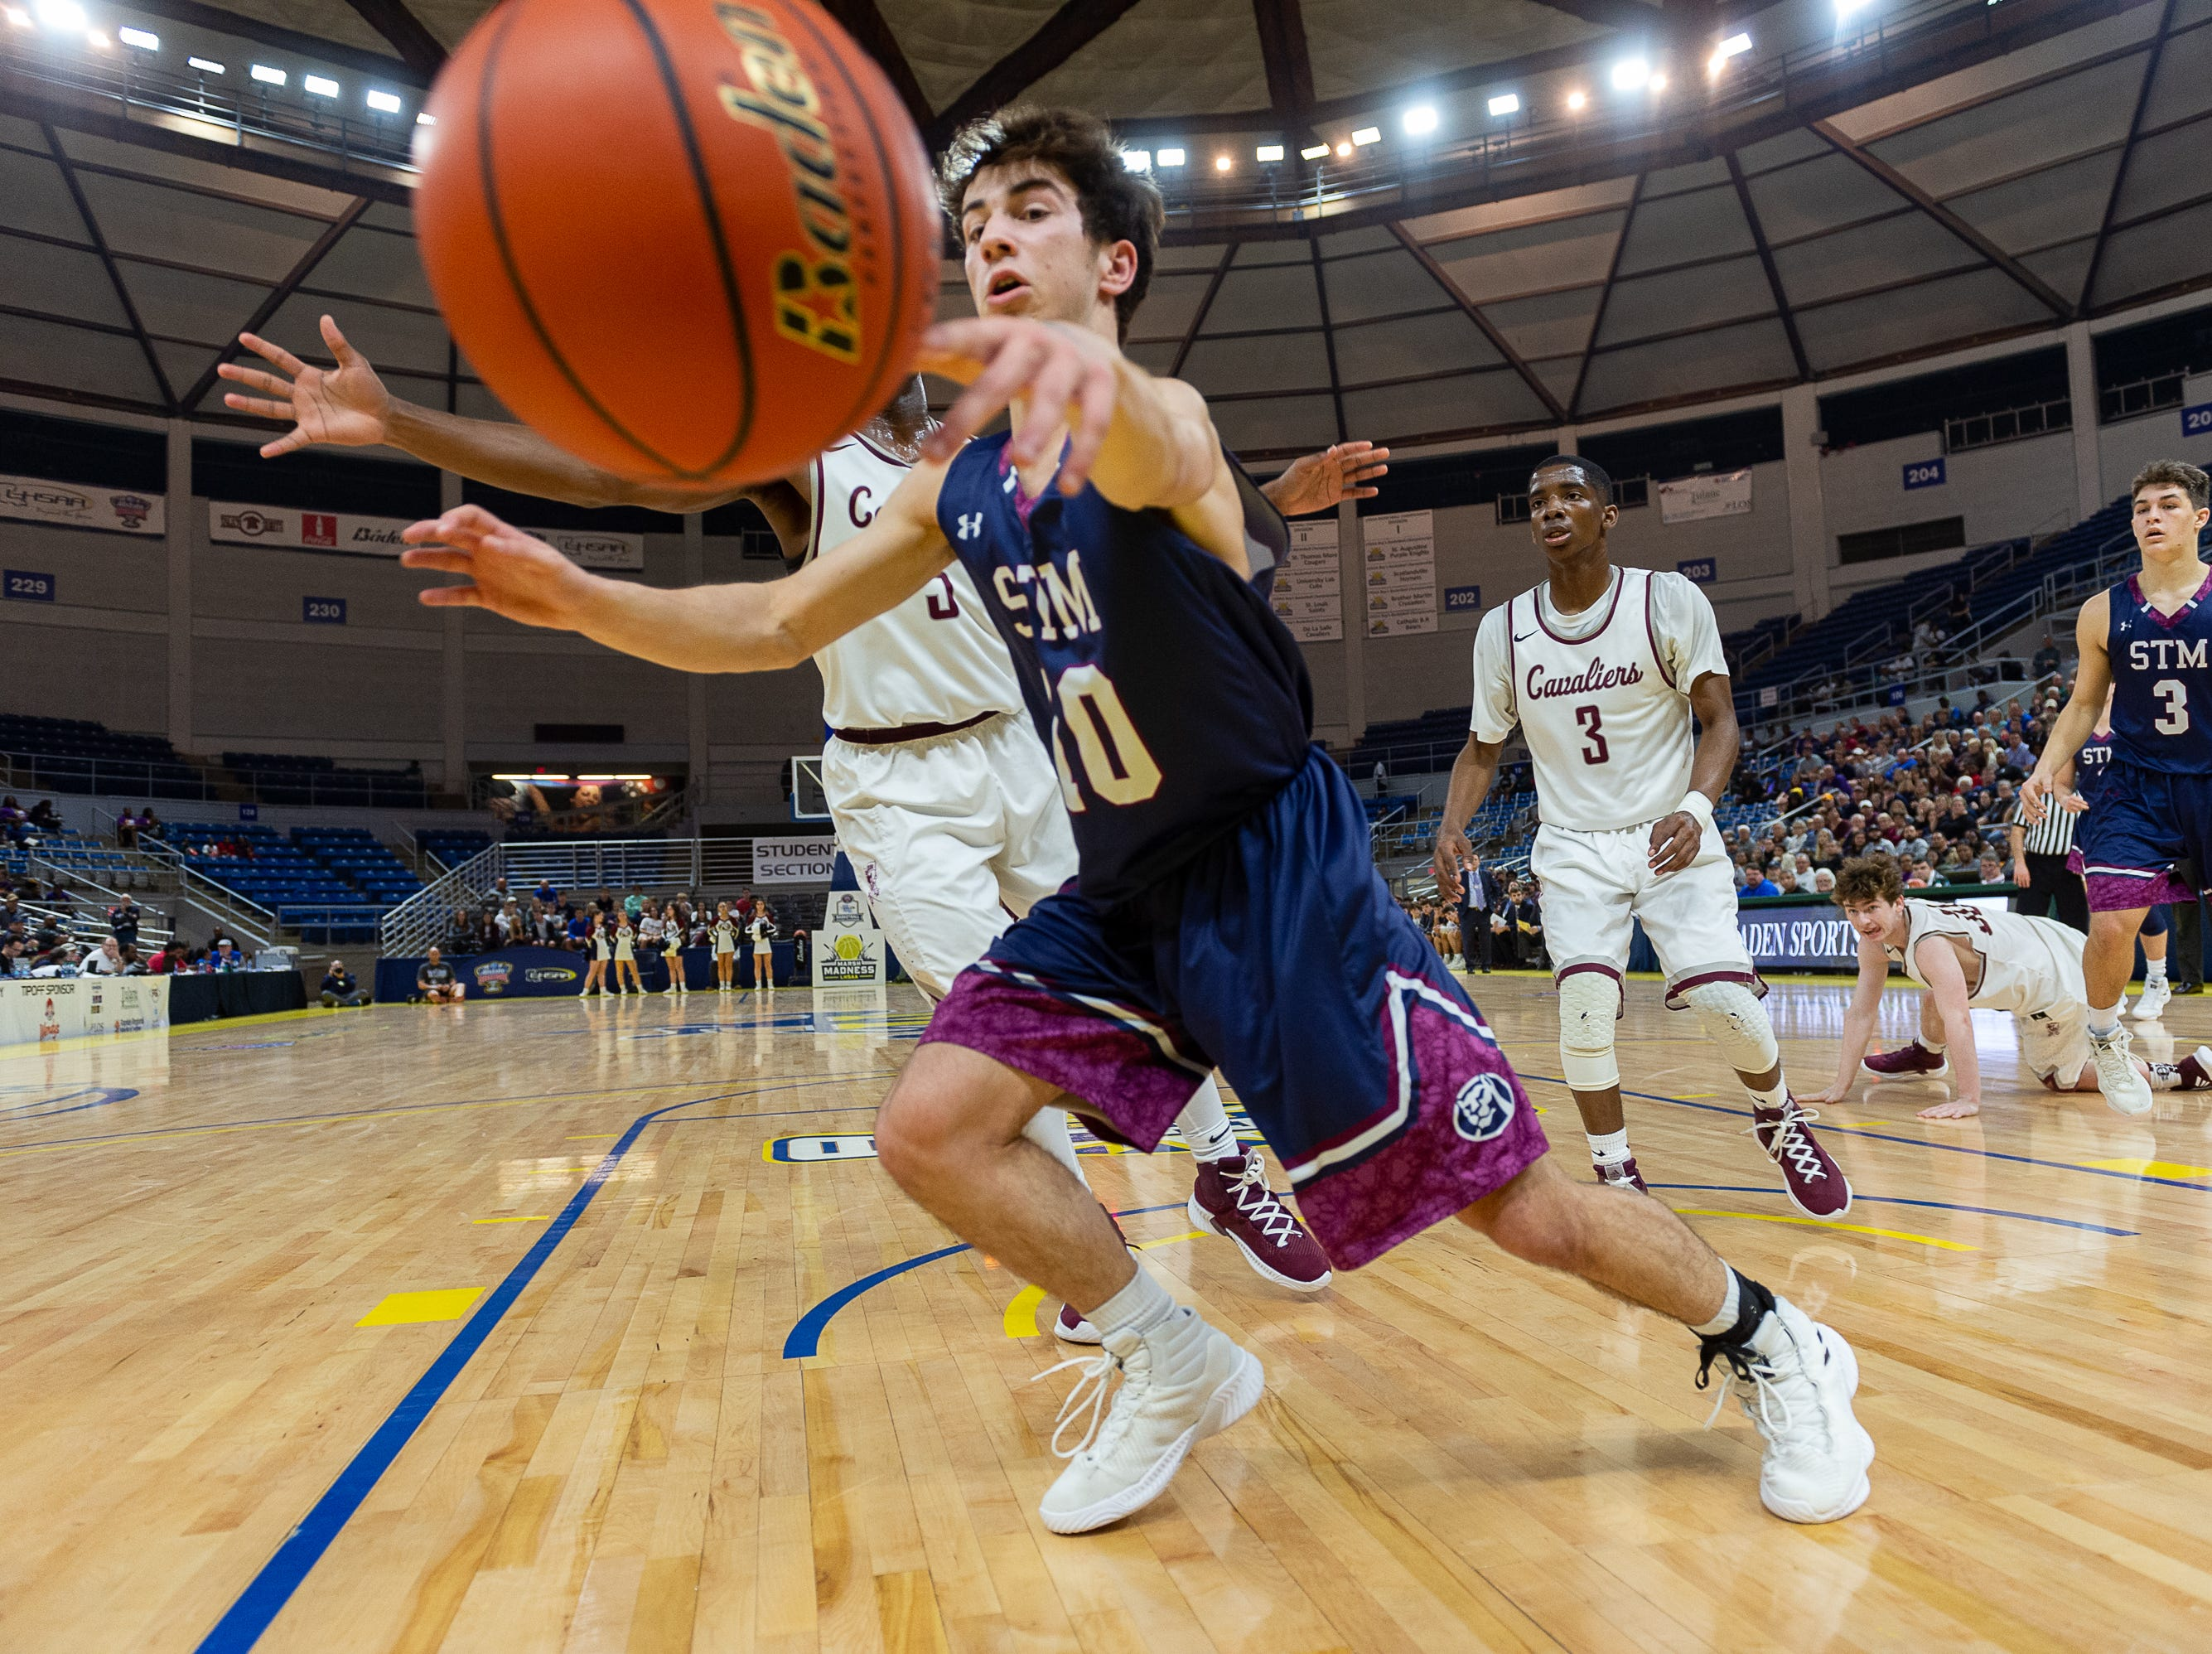 Reece Melancon gets a rebound as The STM Cougars beat DeLaSalle in double overtime to win the Allstate Sugar Bowl/LHSAA Boys' Marsh Madness Div II State Championship. Saturday, March 9, 2019.